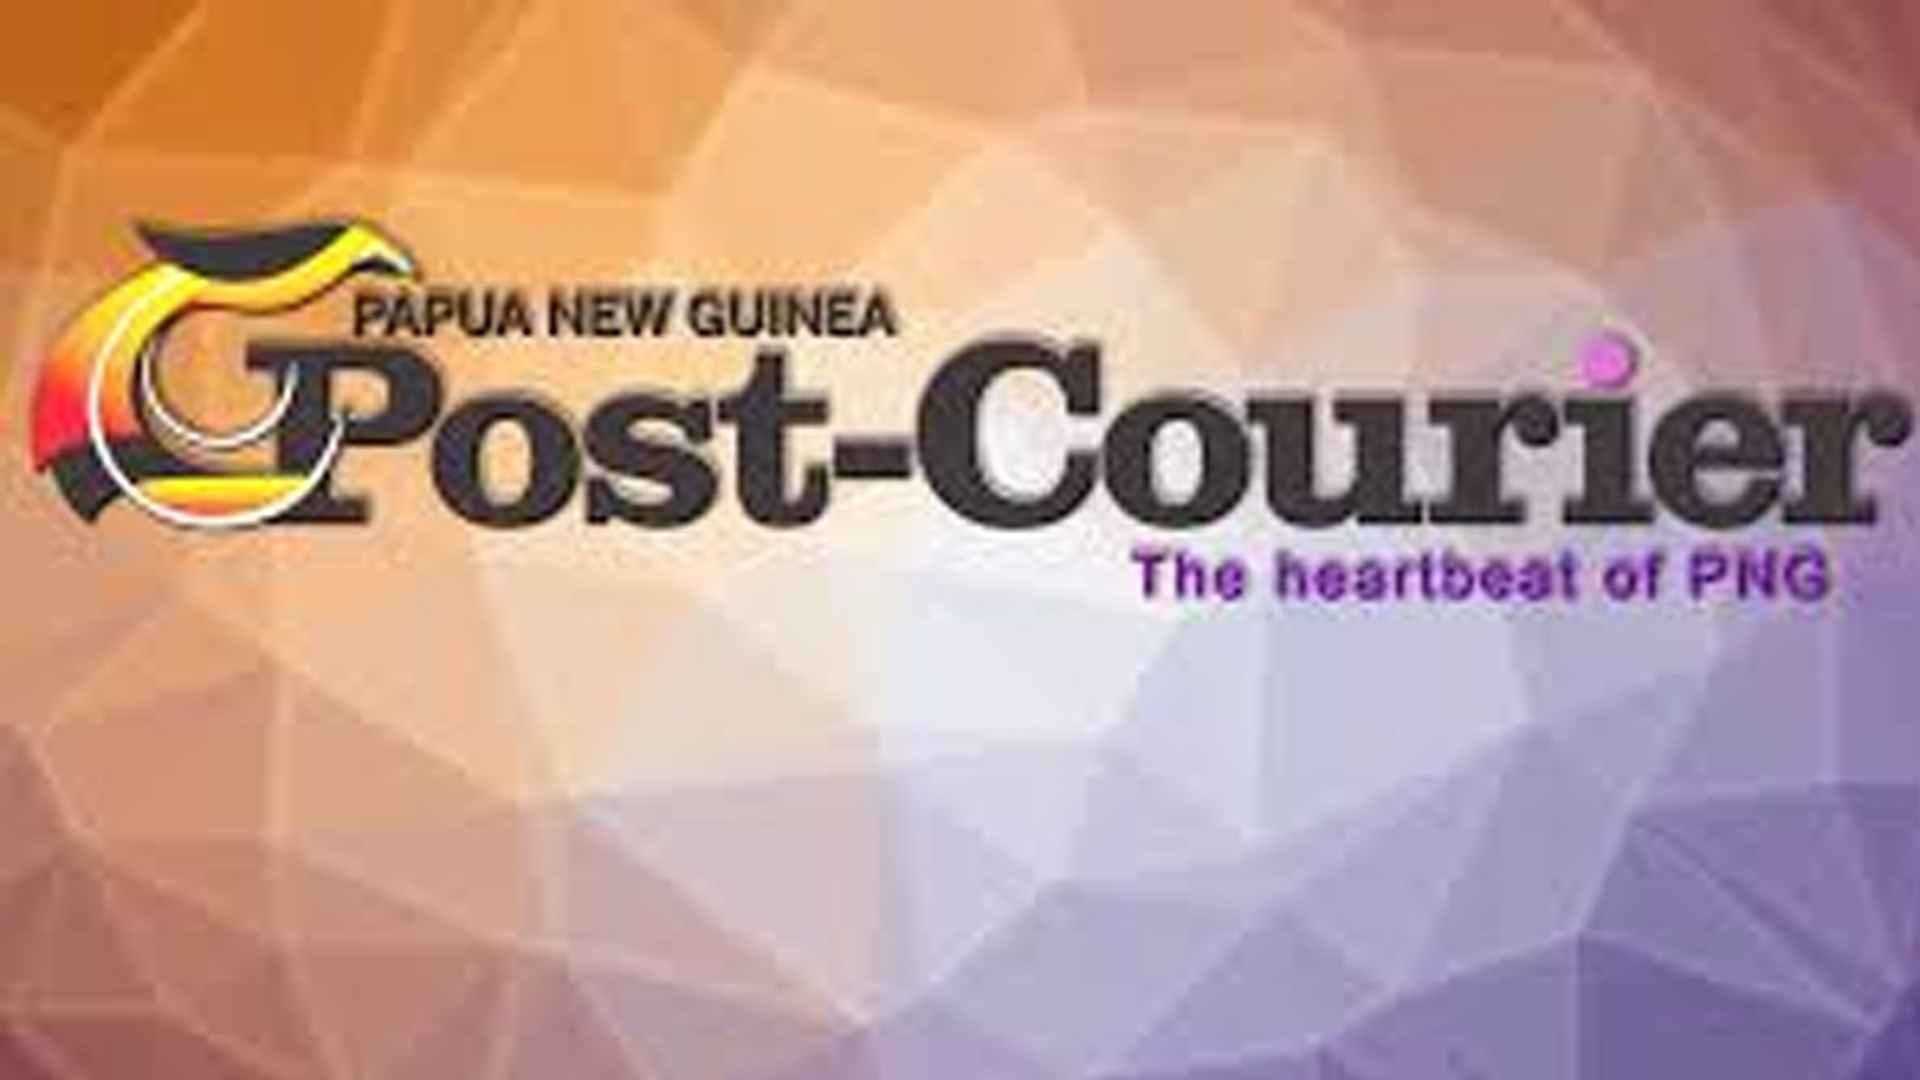 Post Courier.